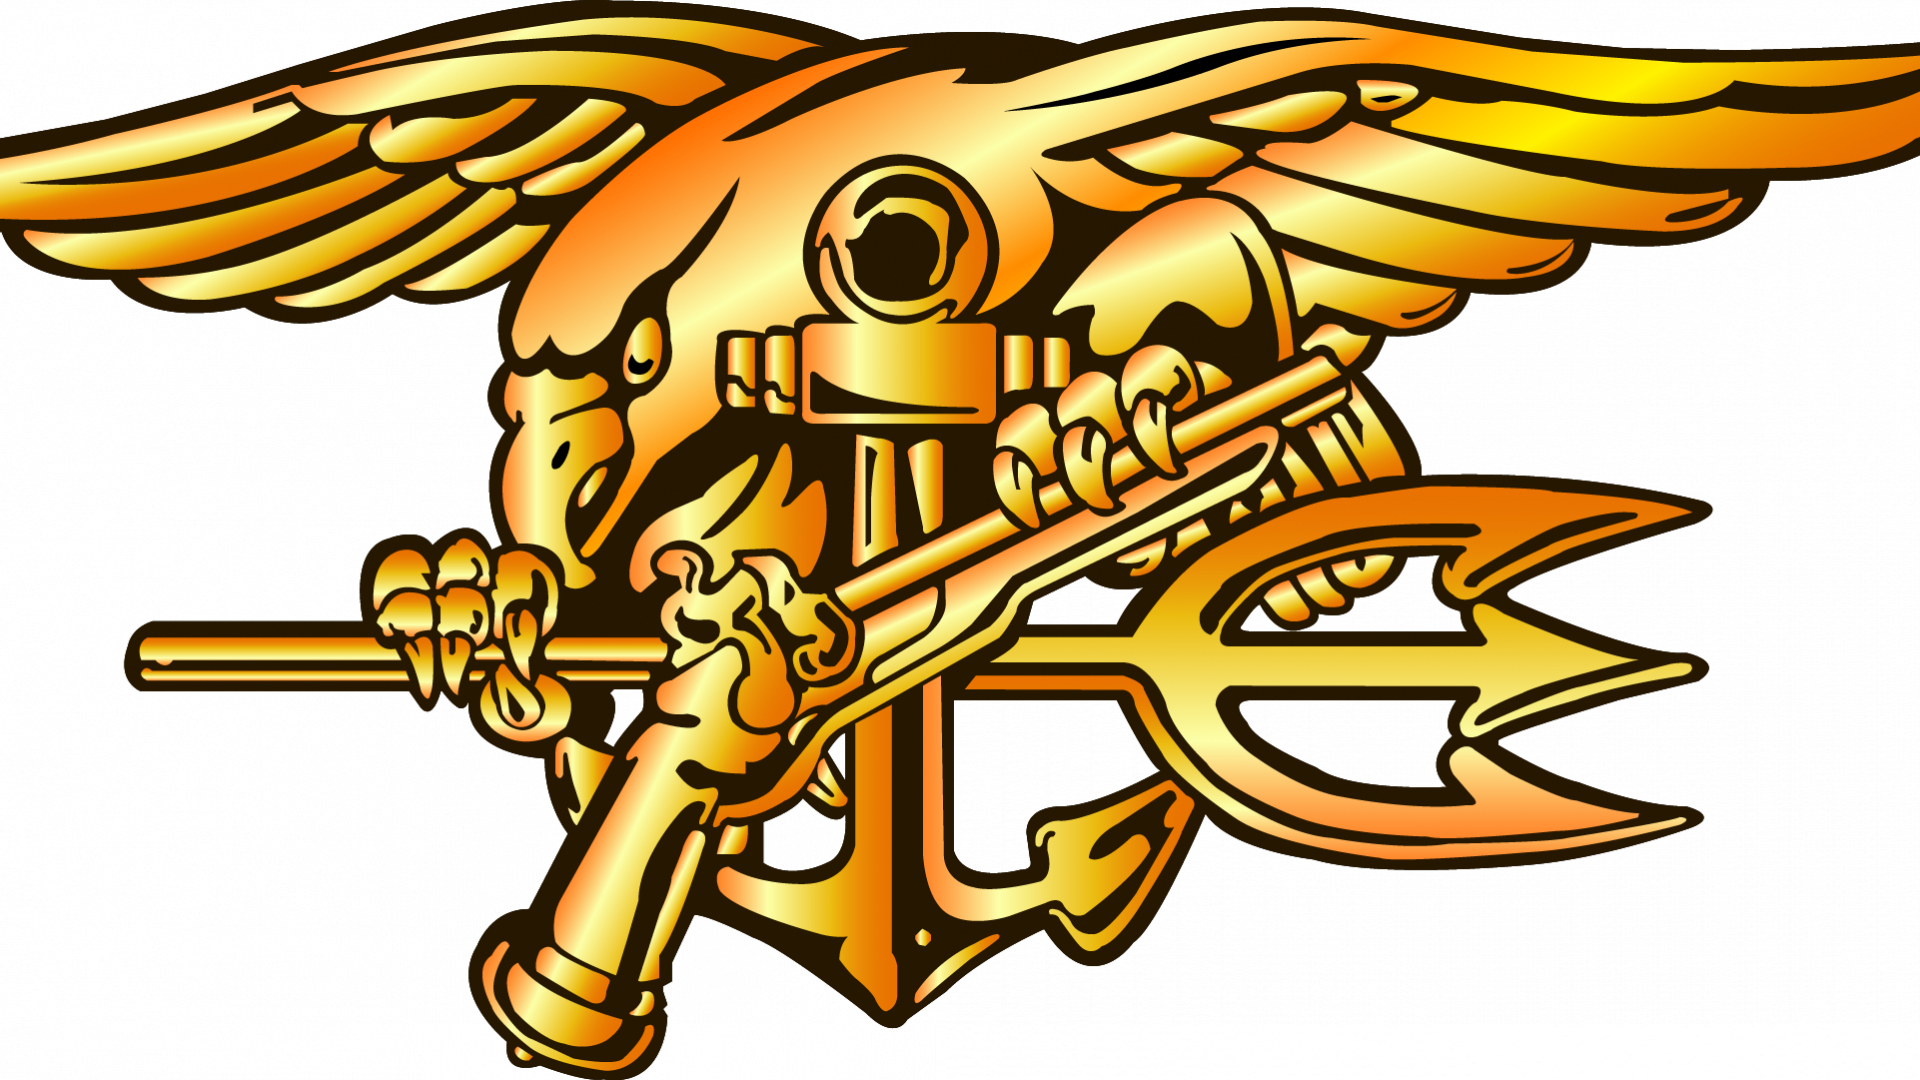 Free download Neptunes Trident Symbol Like water neptune is